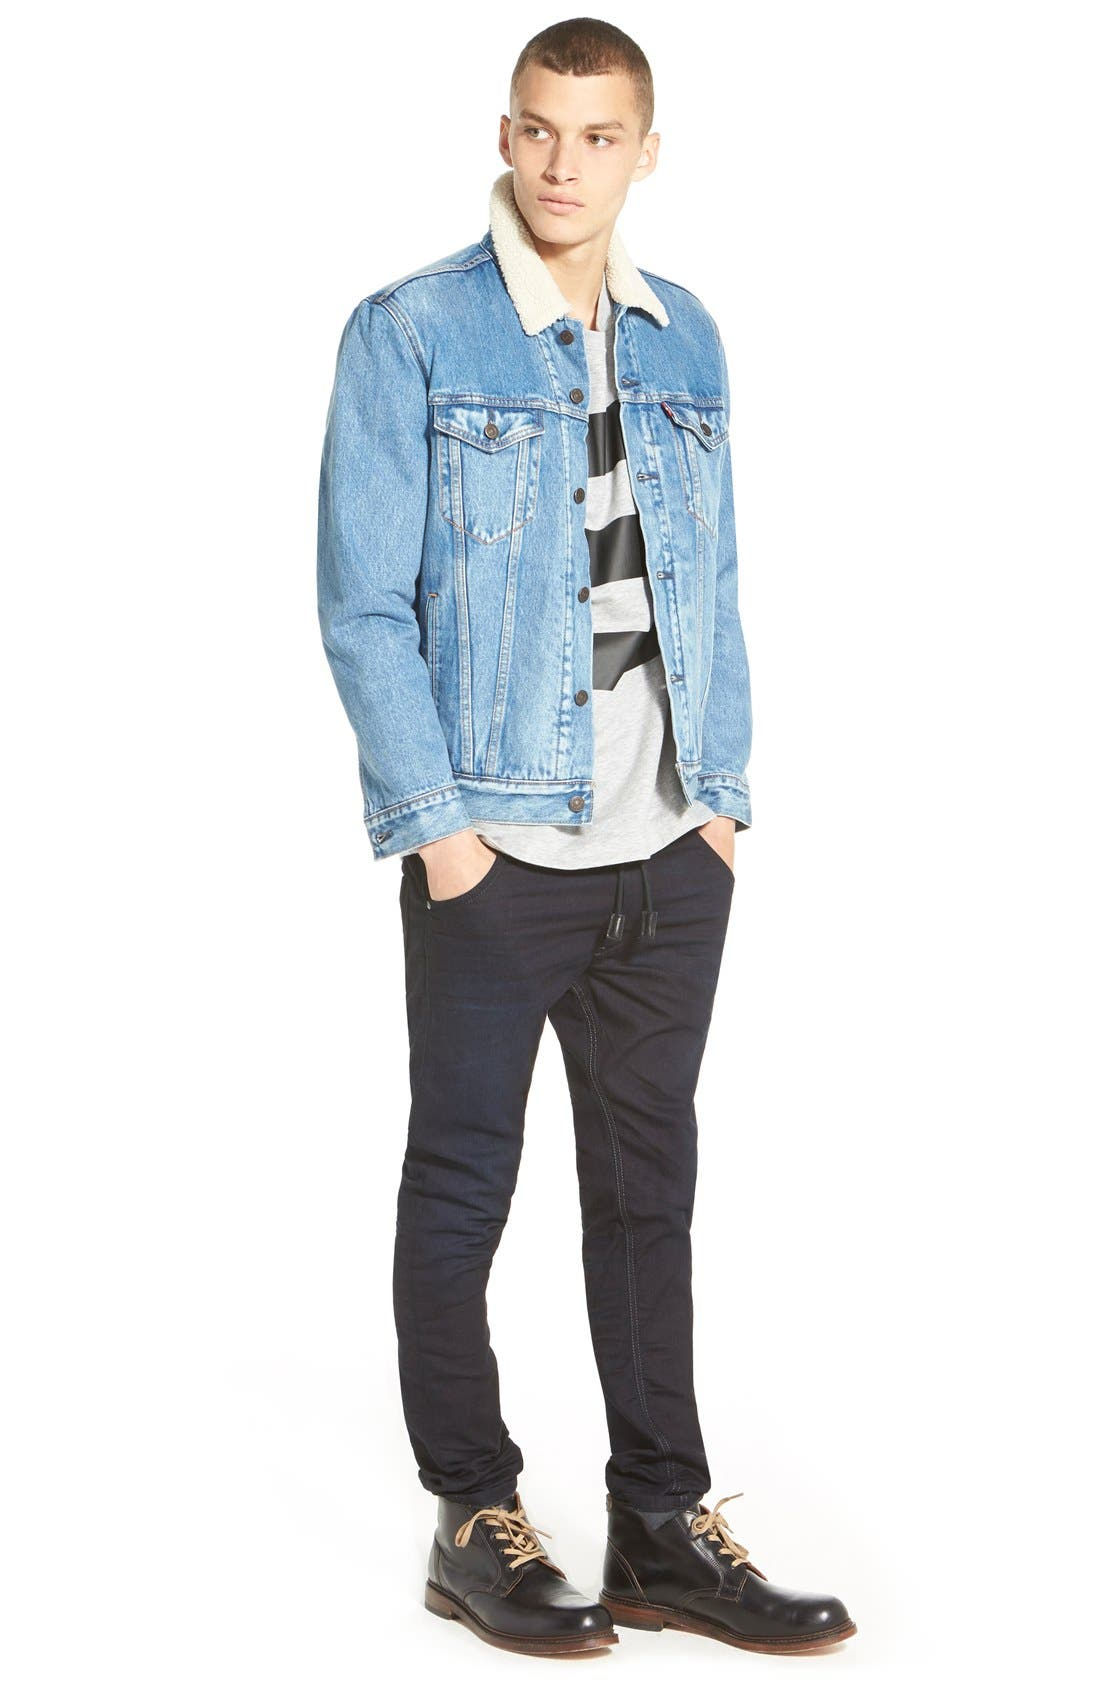 DIESEL<SUP>®</SUP>, Krooley Jogg Slouchy Skinny Fit Jeans, Alternate thumbnail 2, color, 0829P